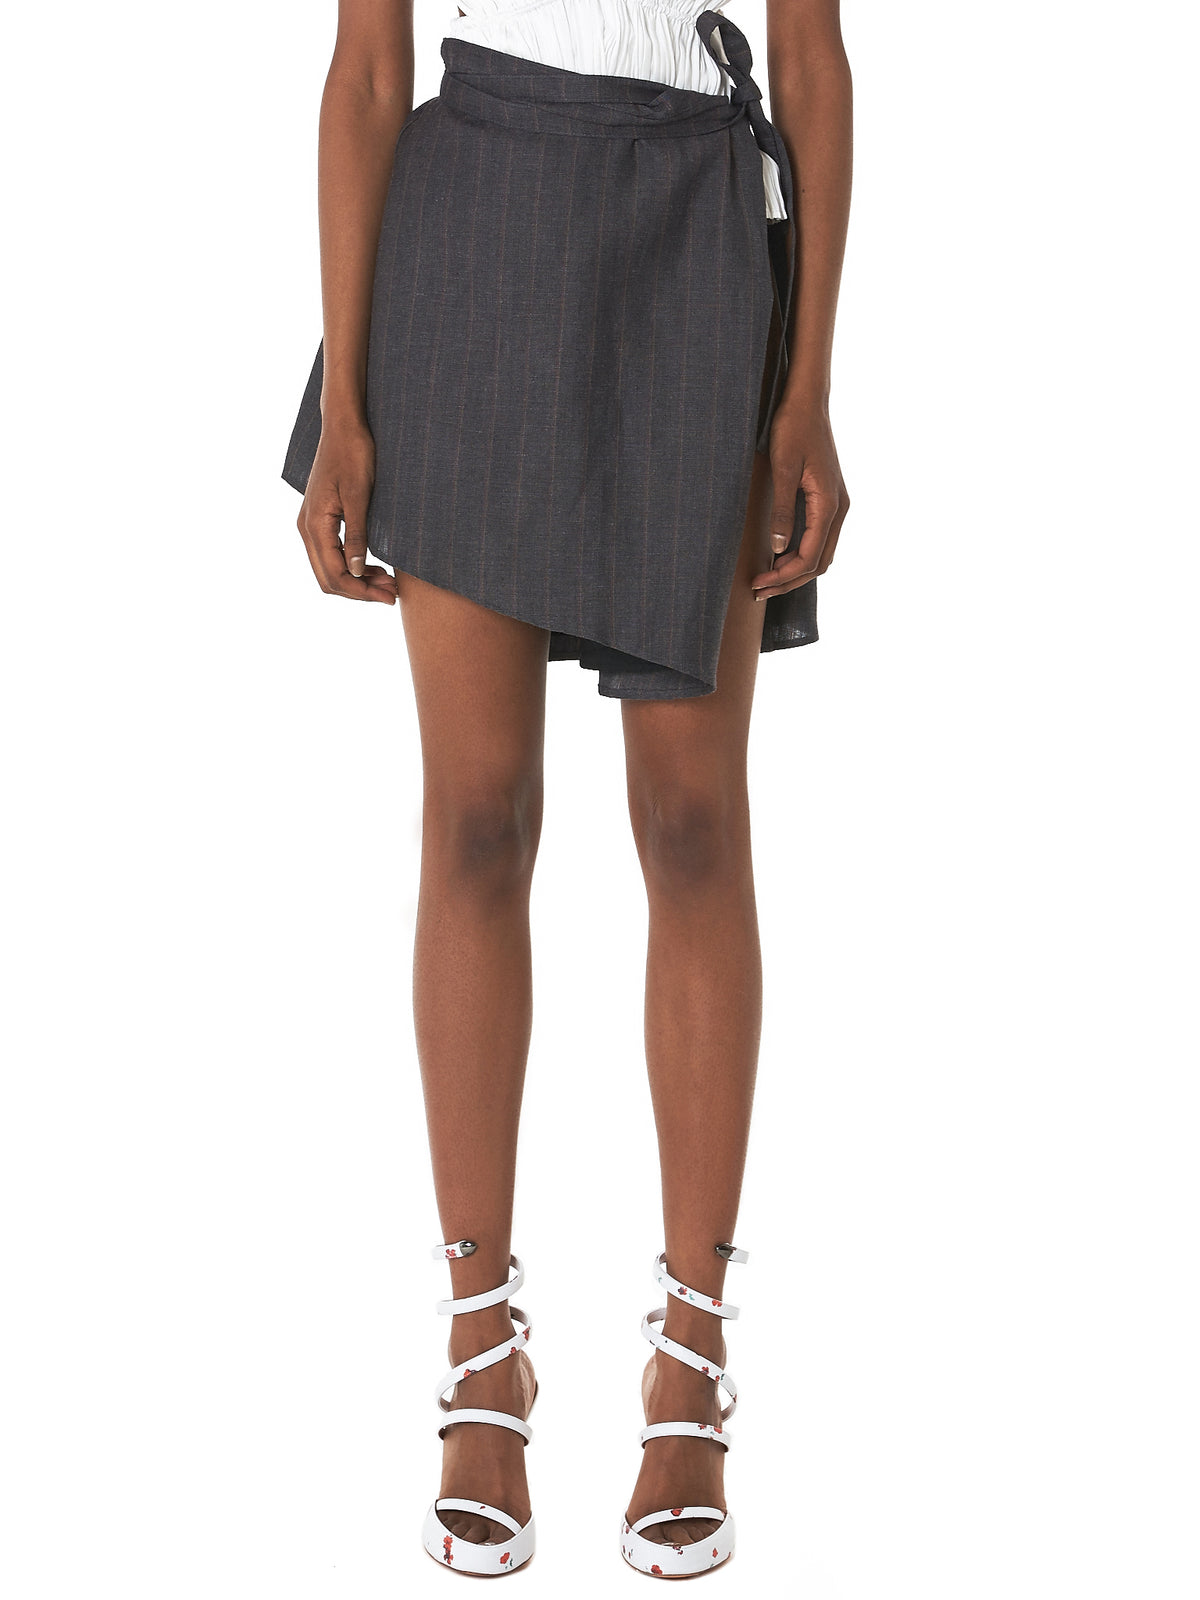 Y/Project Skirt - Hlorenzo Front